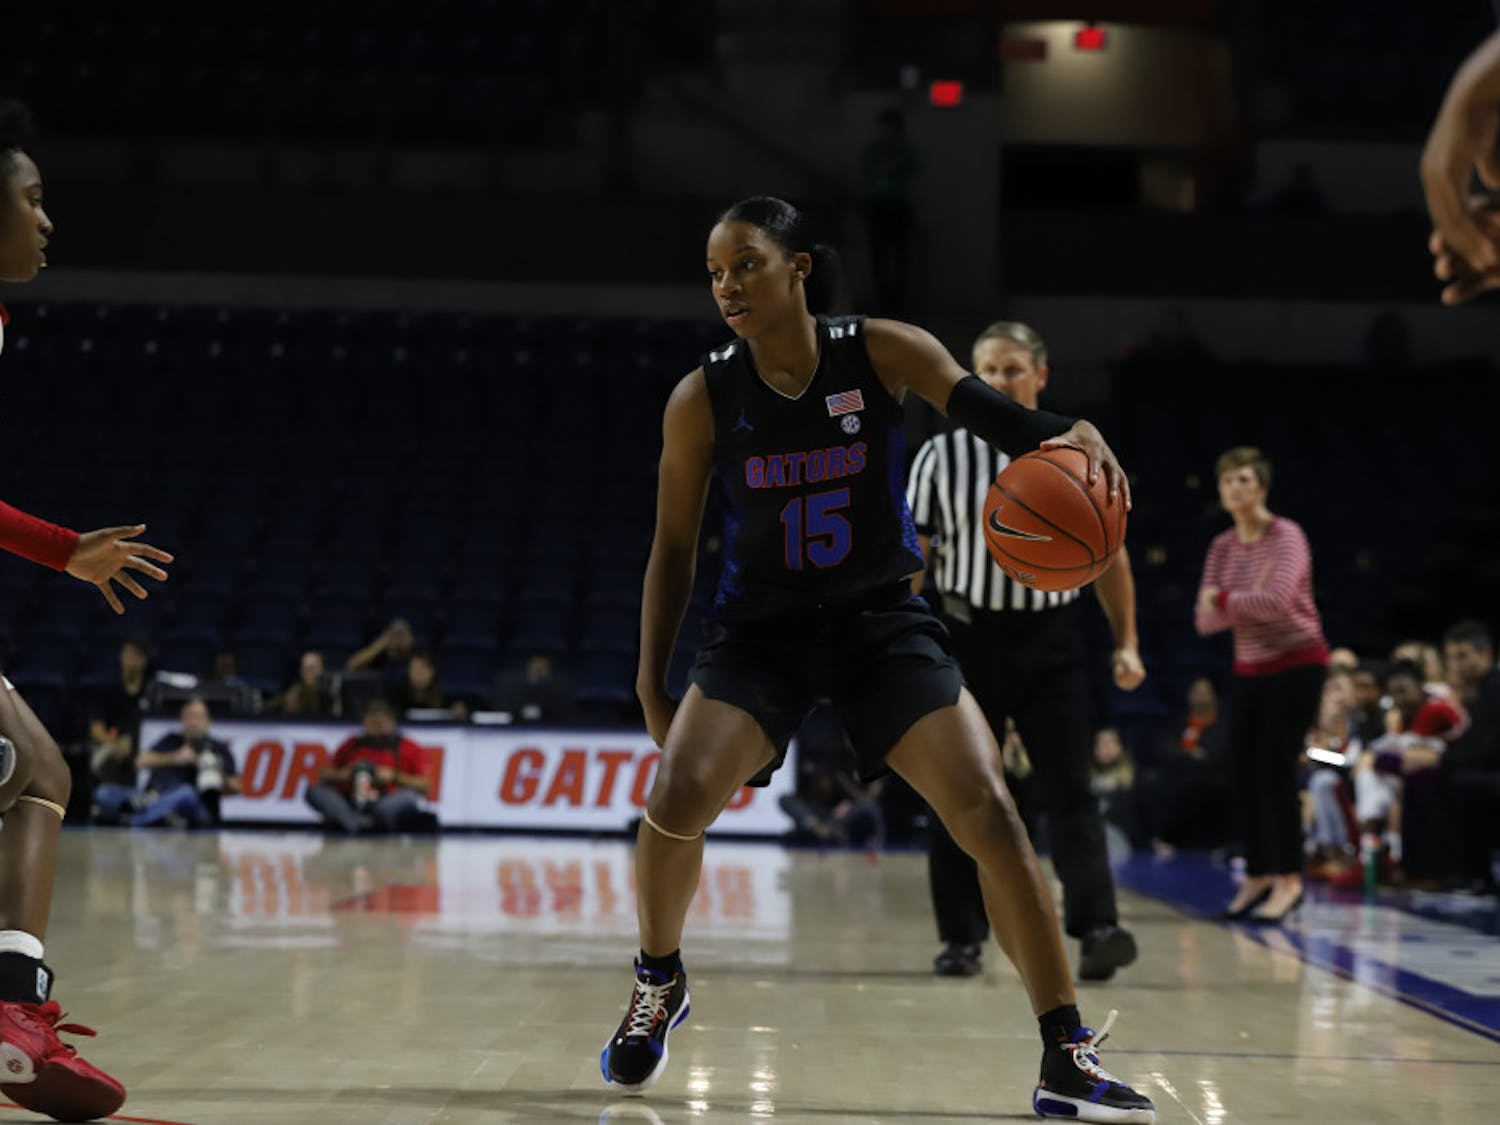 Sophomore guard Nina Rickards put up 18 points and sot 4-6 from deep in the Gators loss to the Seminoles.